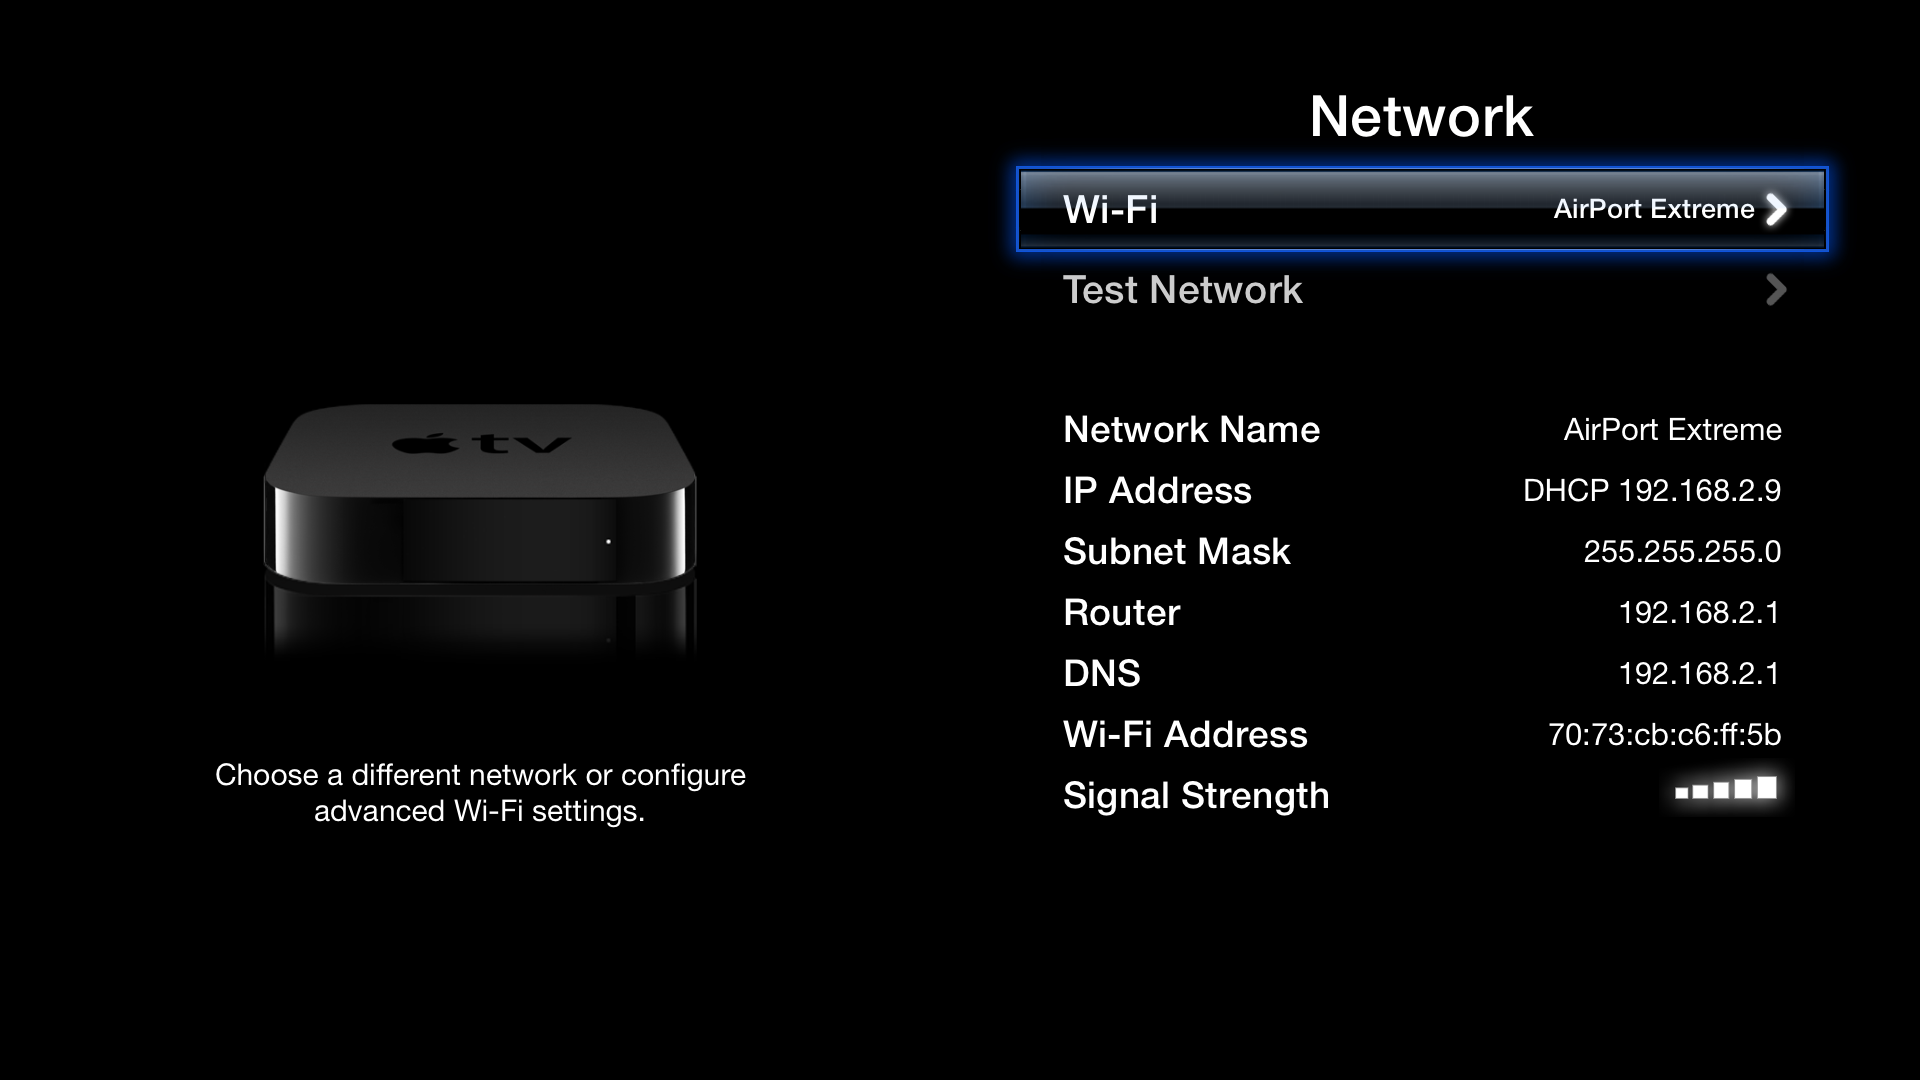 How to watch live broadcast TV on your Apple TV without cable